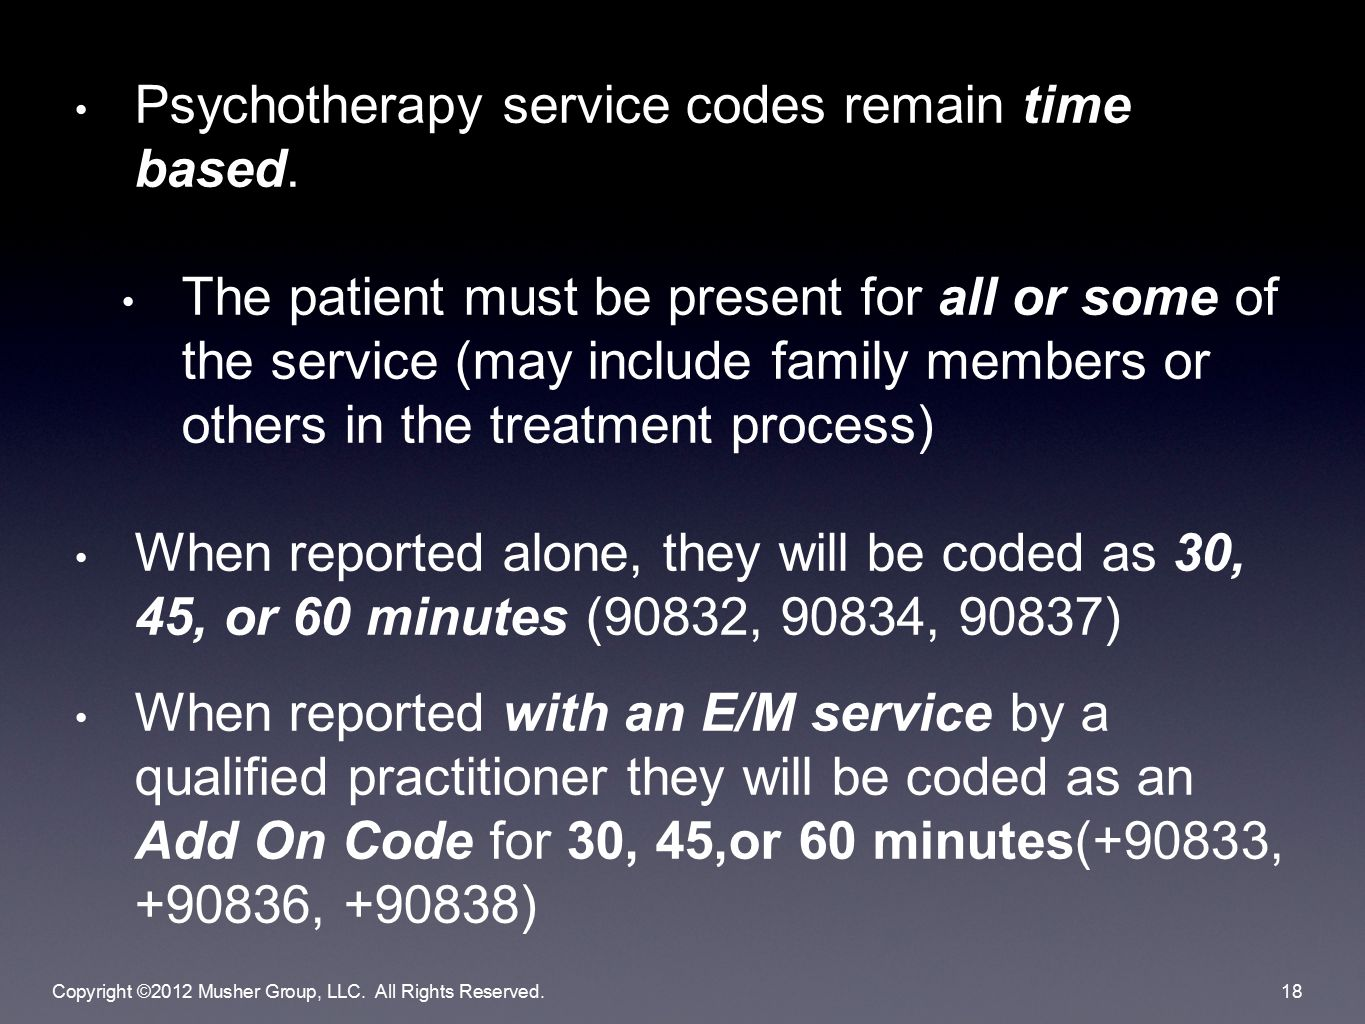 Psychotherapy service codes remain time based.